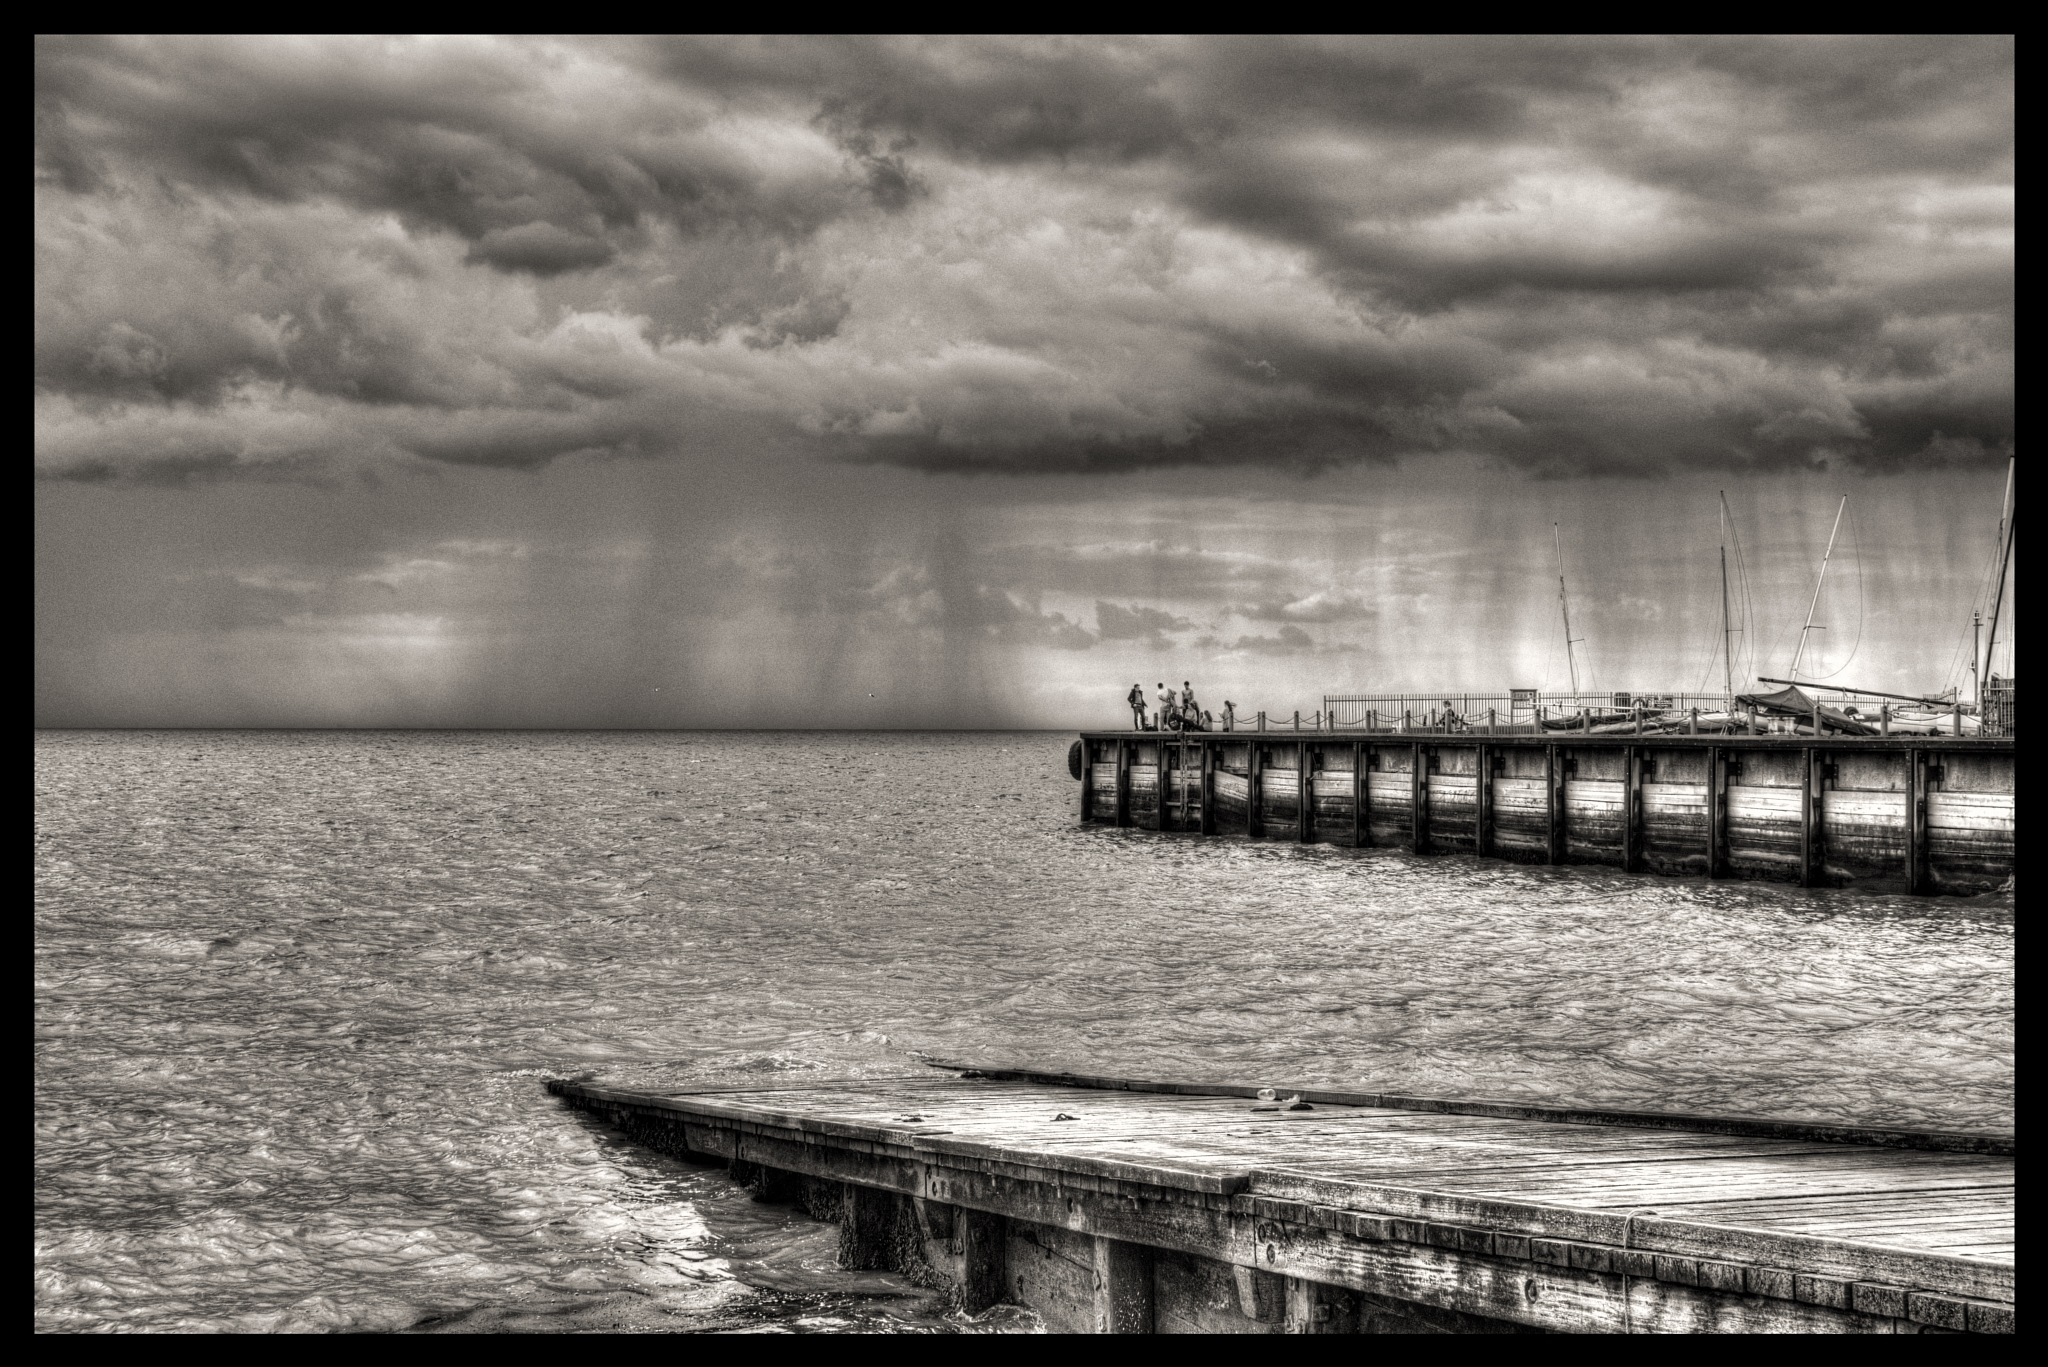 Approaching Storm by stephen.harding.735